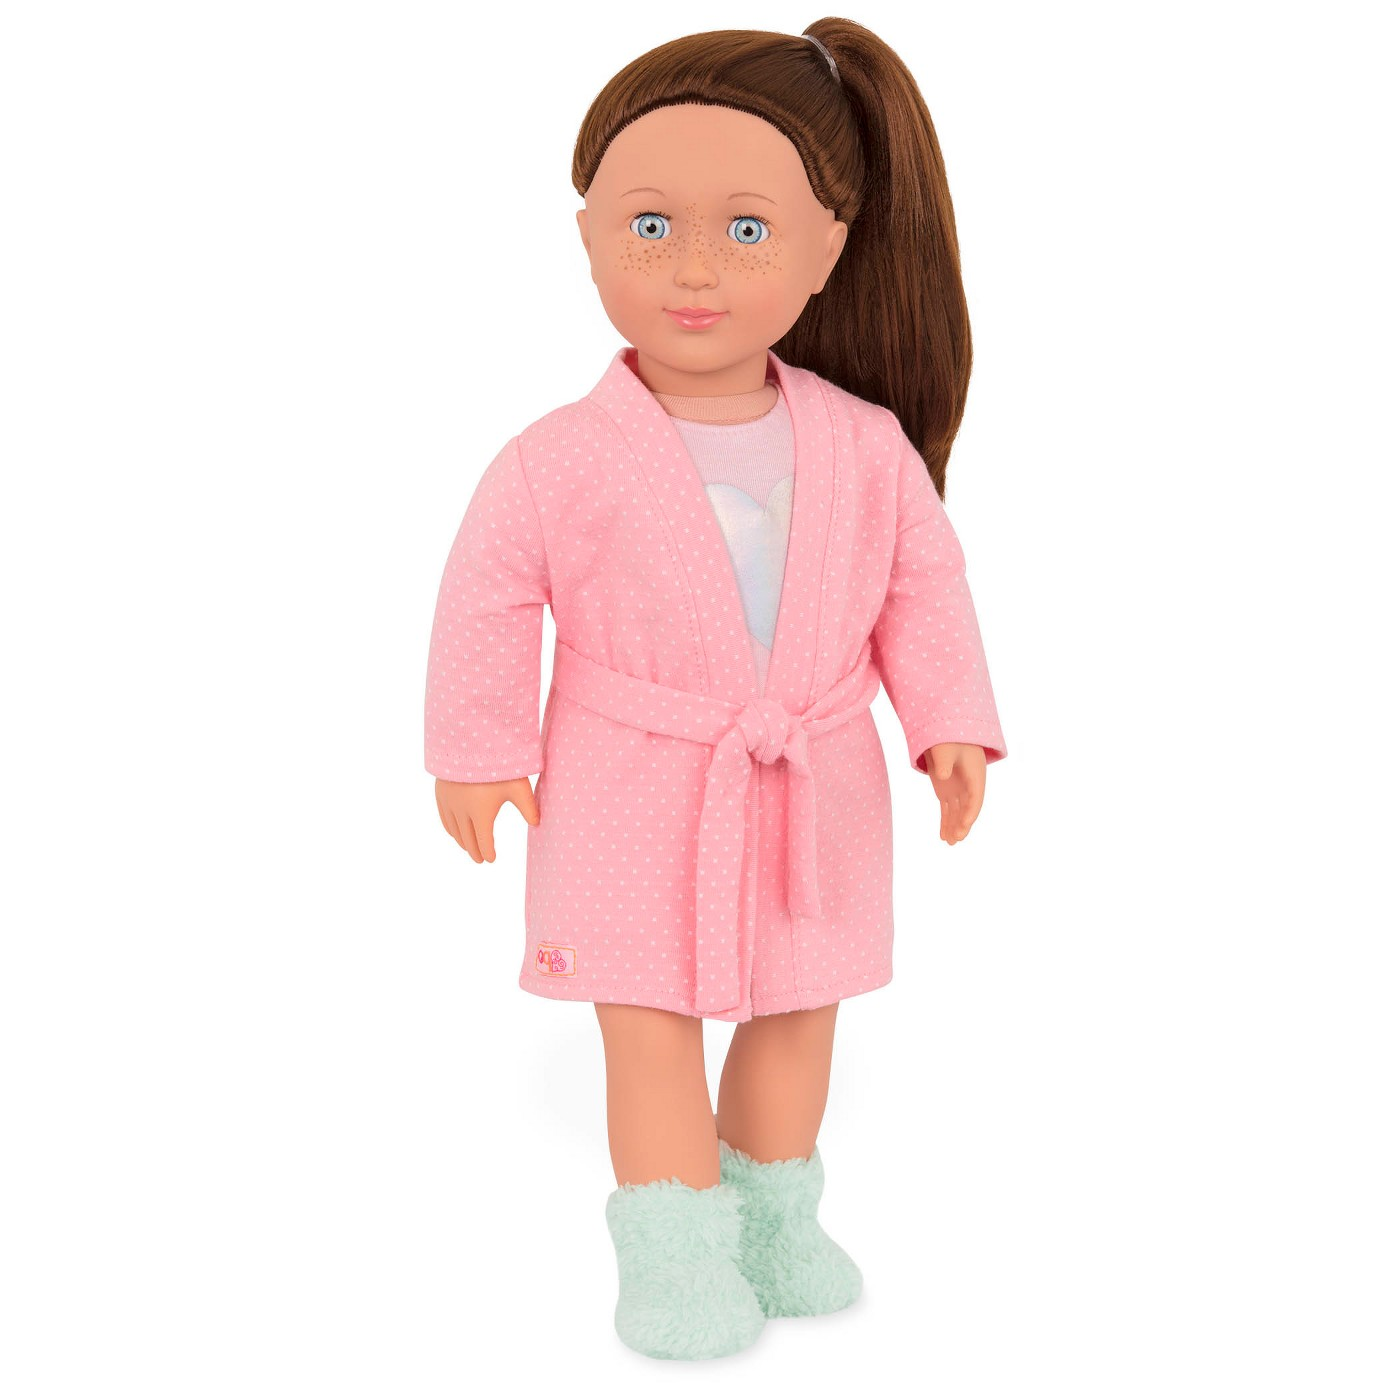 Our Generation Regular Sleepover Doll - Lake - image 1 of 2